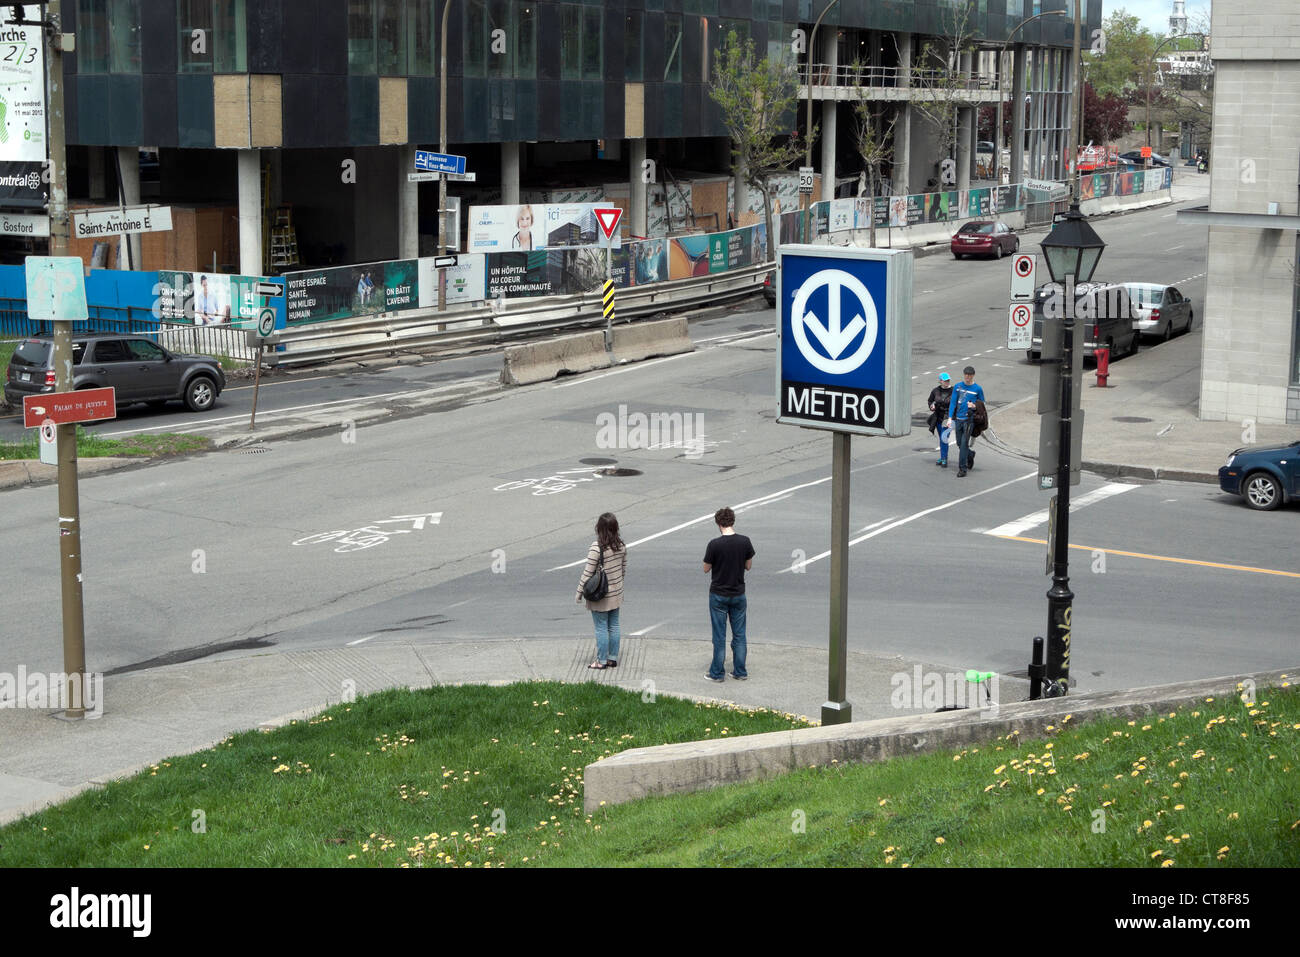 Metro station sign at Champ de Mars on at the corner of Rue Saint-Antoine and Rue Gosford Montreal, Quebec, Canada - Stock Image